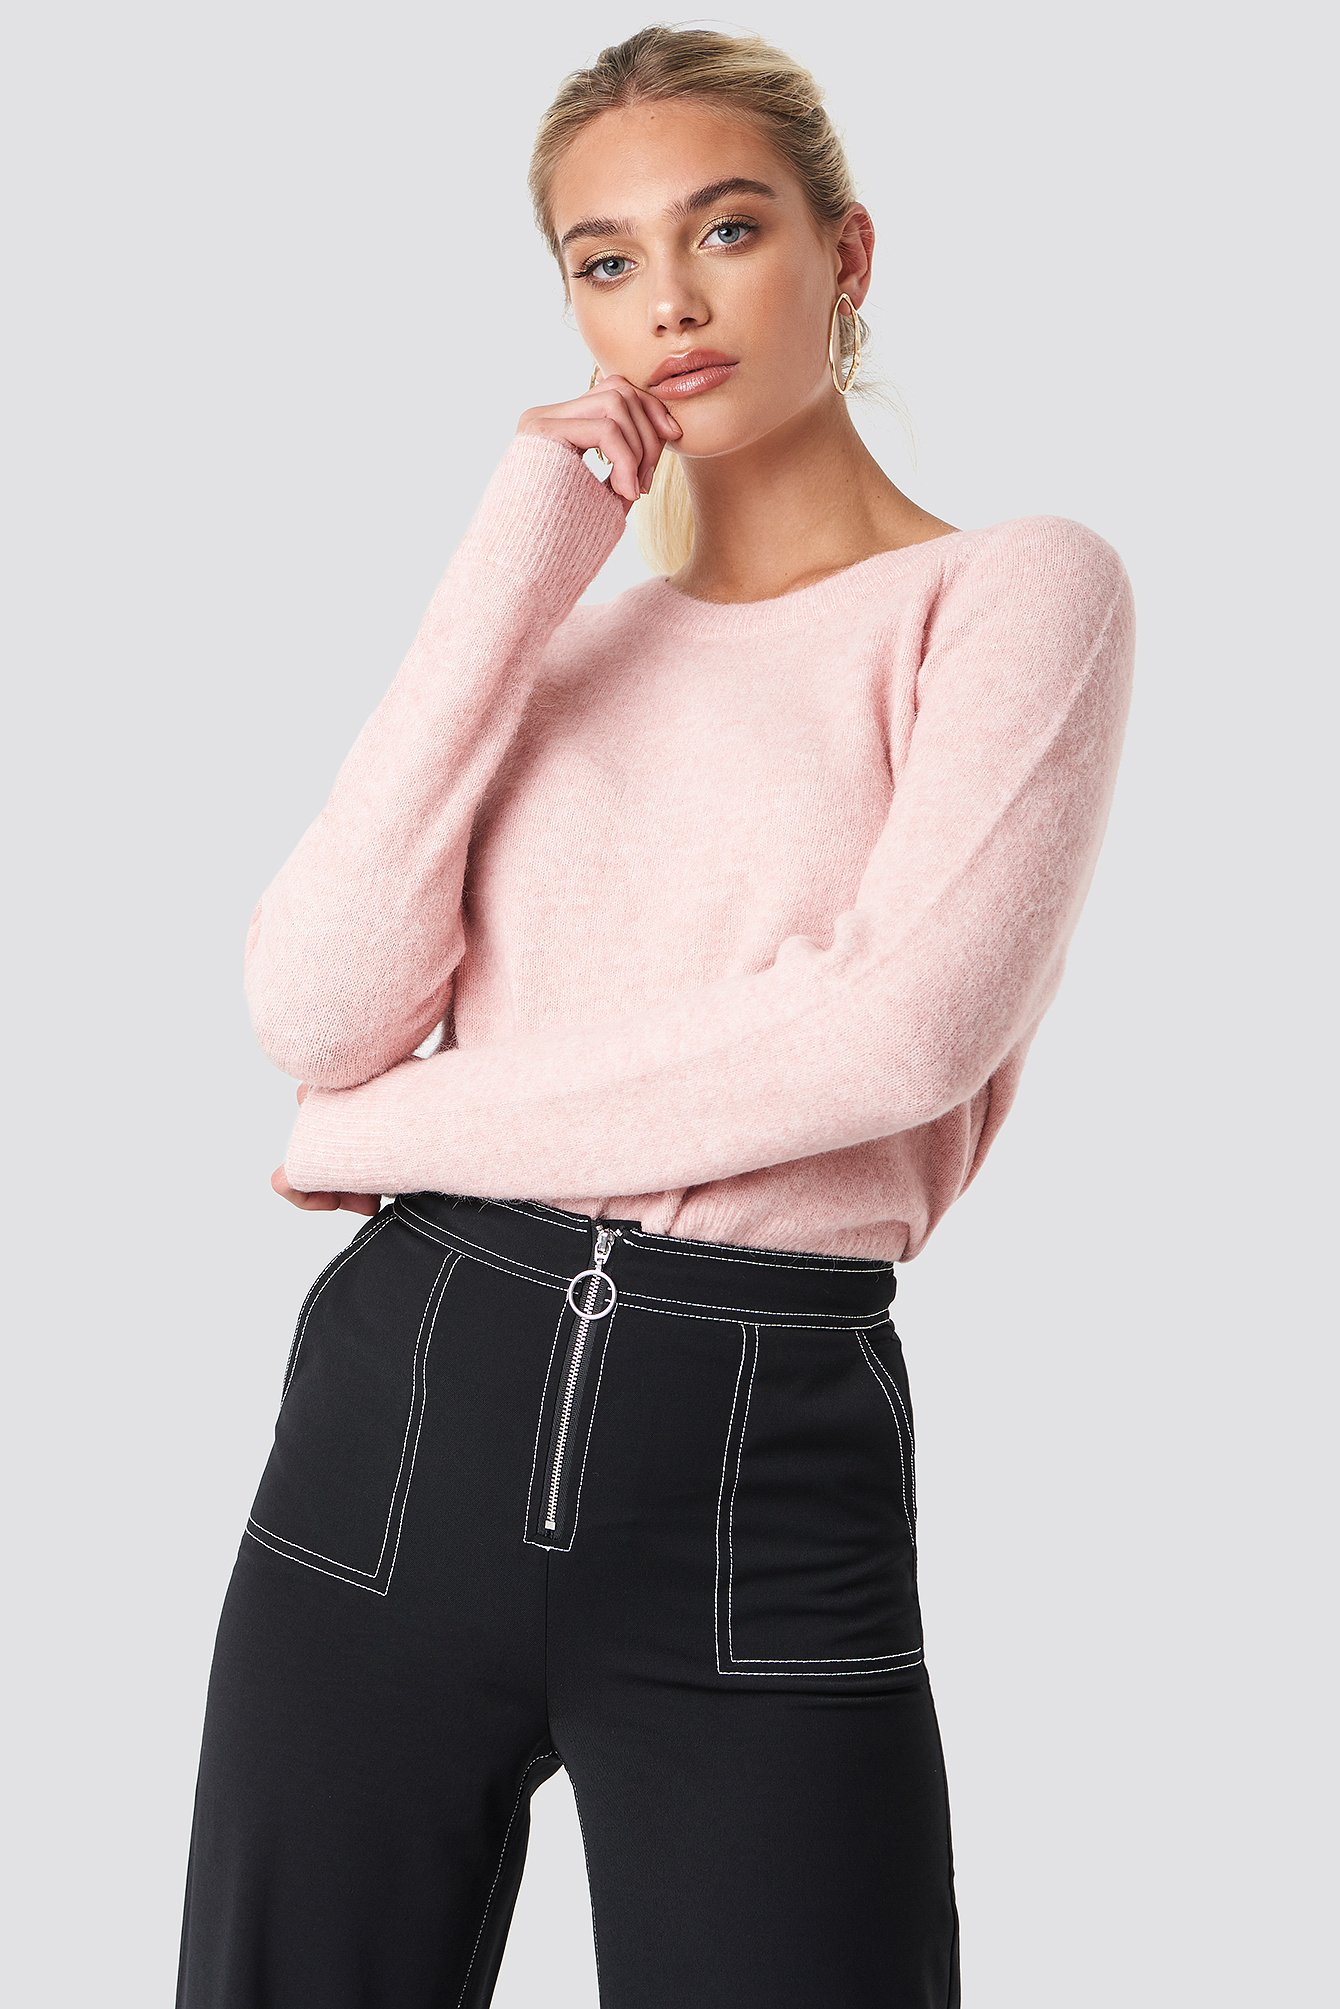 Nor O-N Short Sweater NA-KD.COM